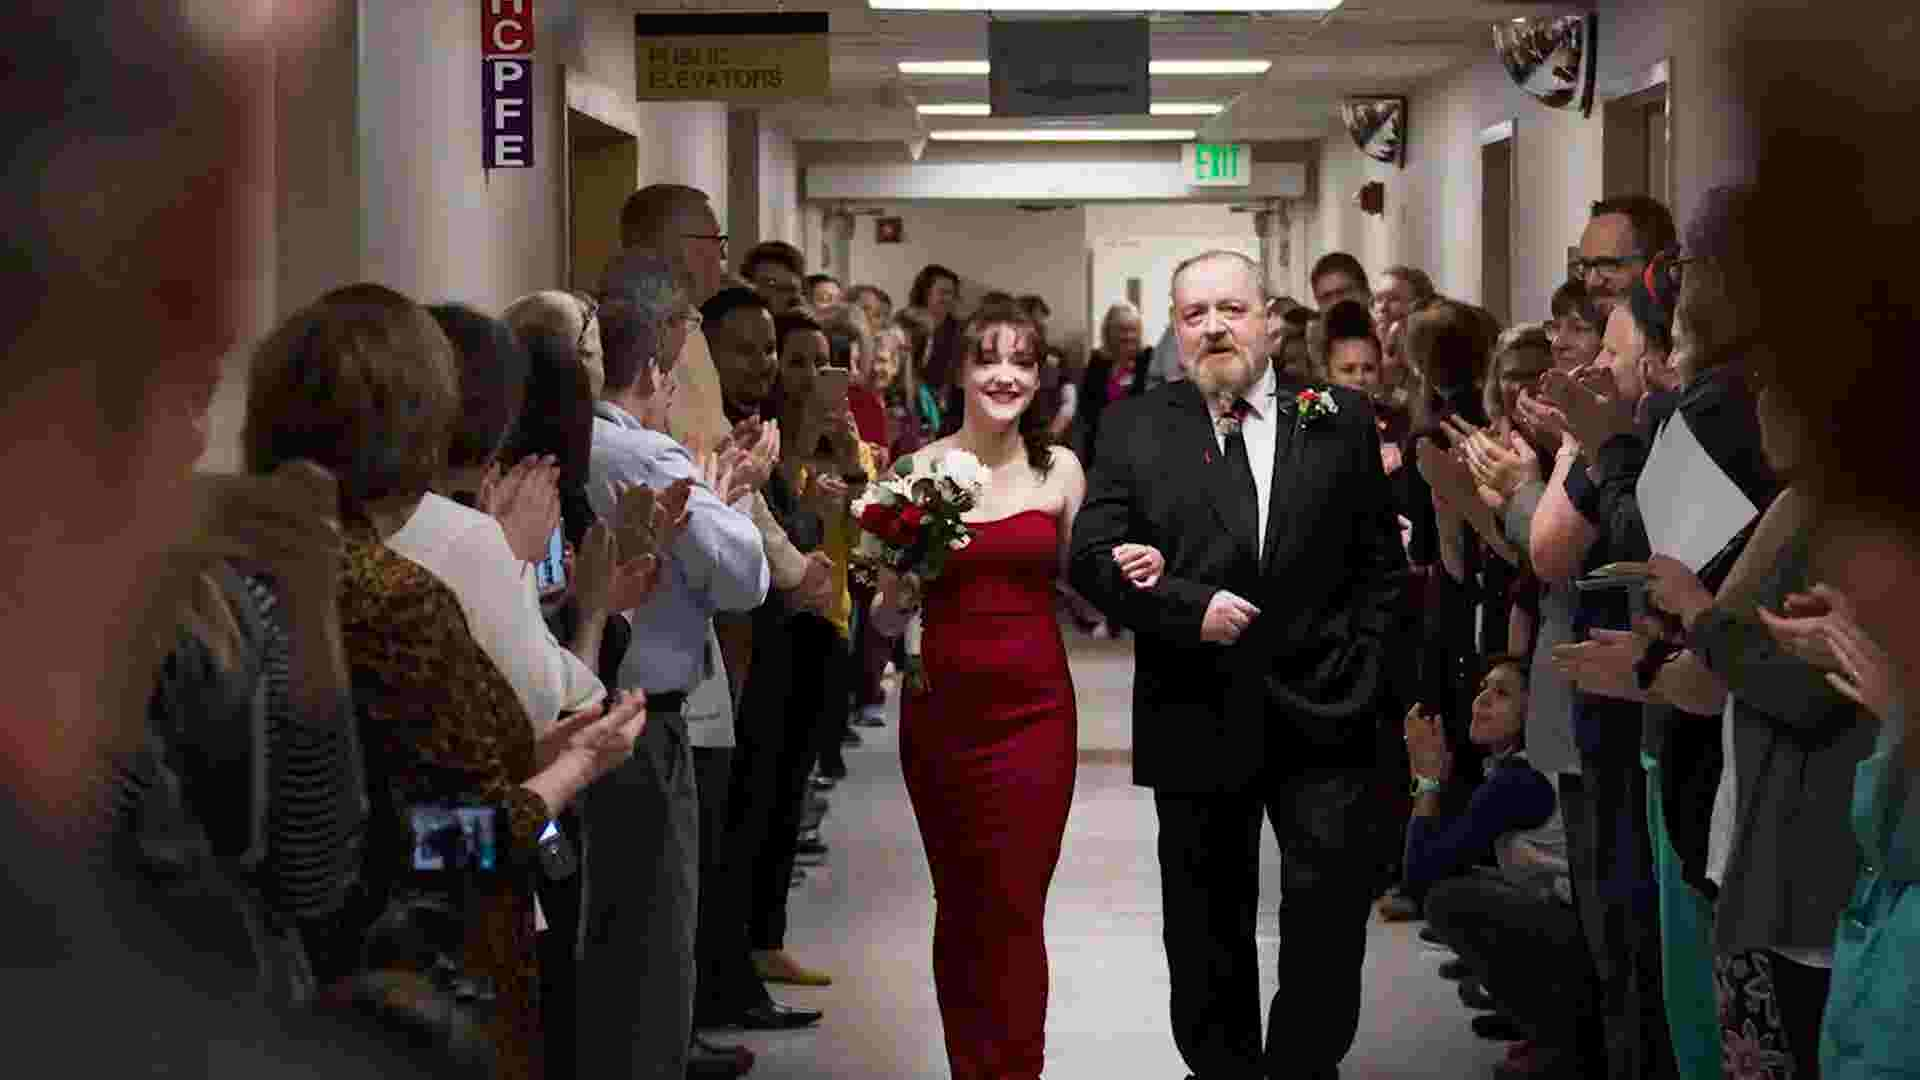 On wedding day, dad walks daughter down the hospital aisle